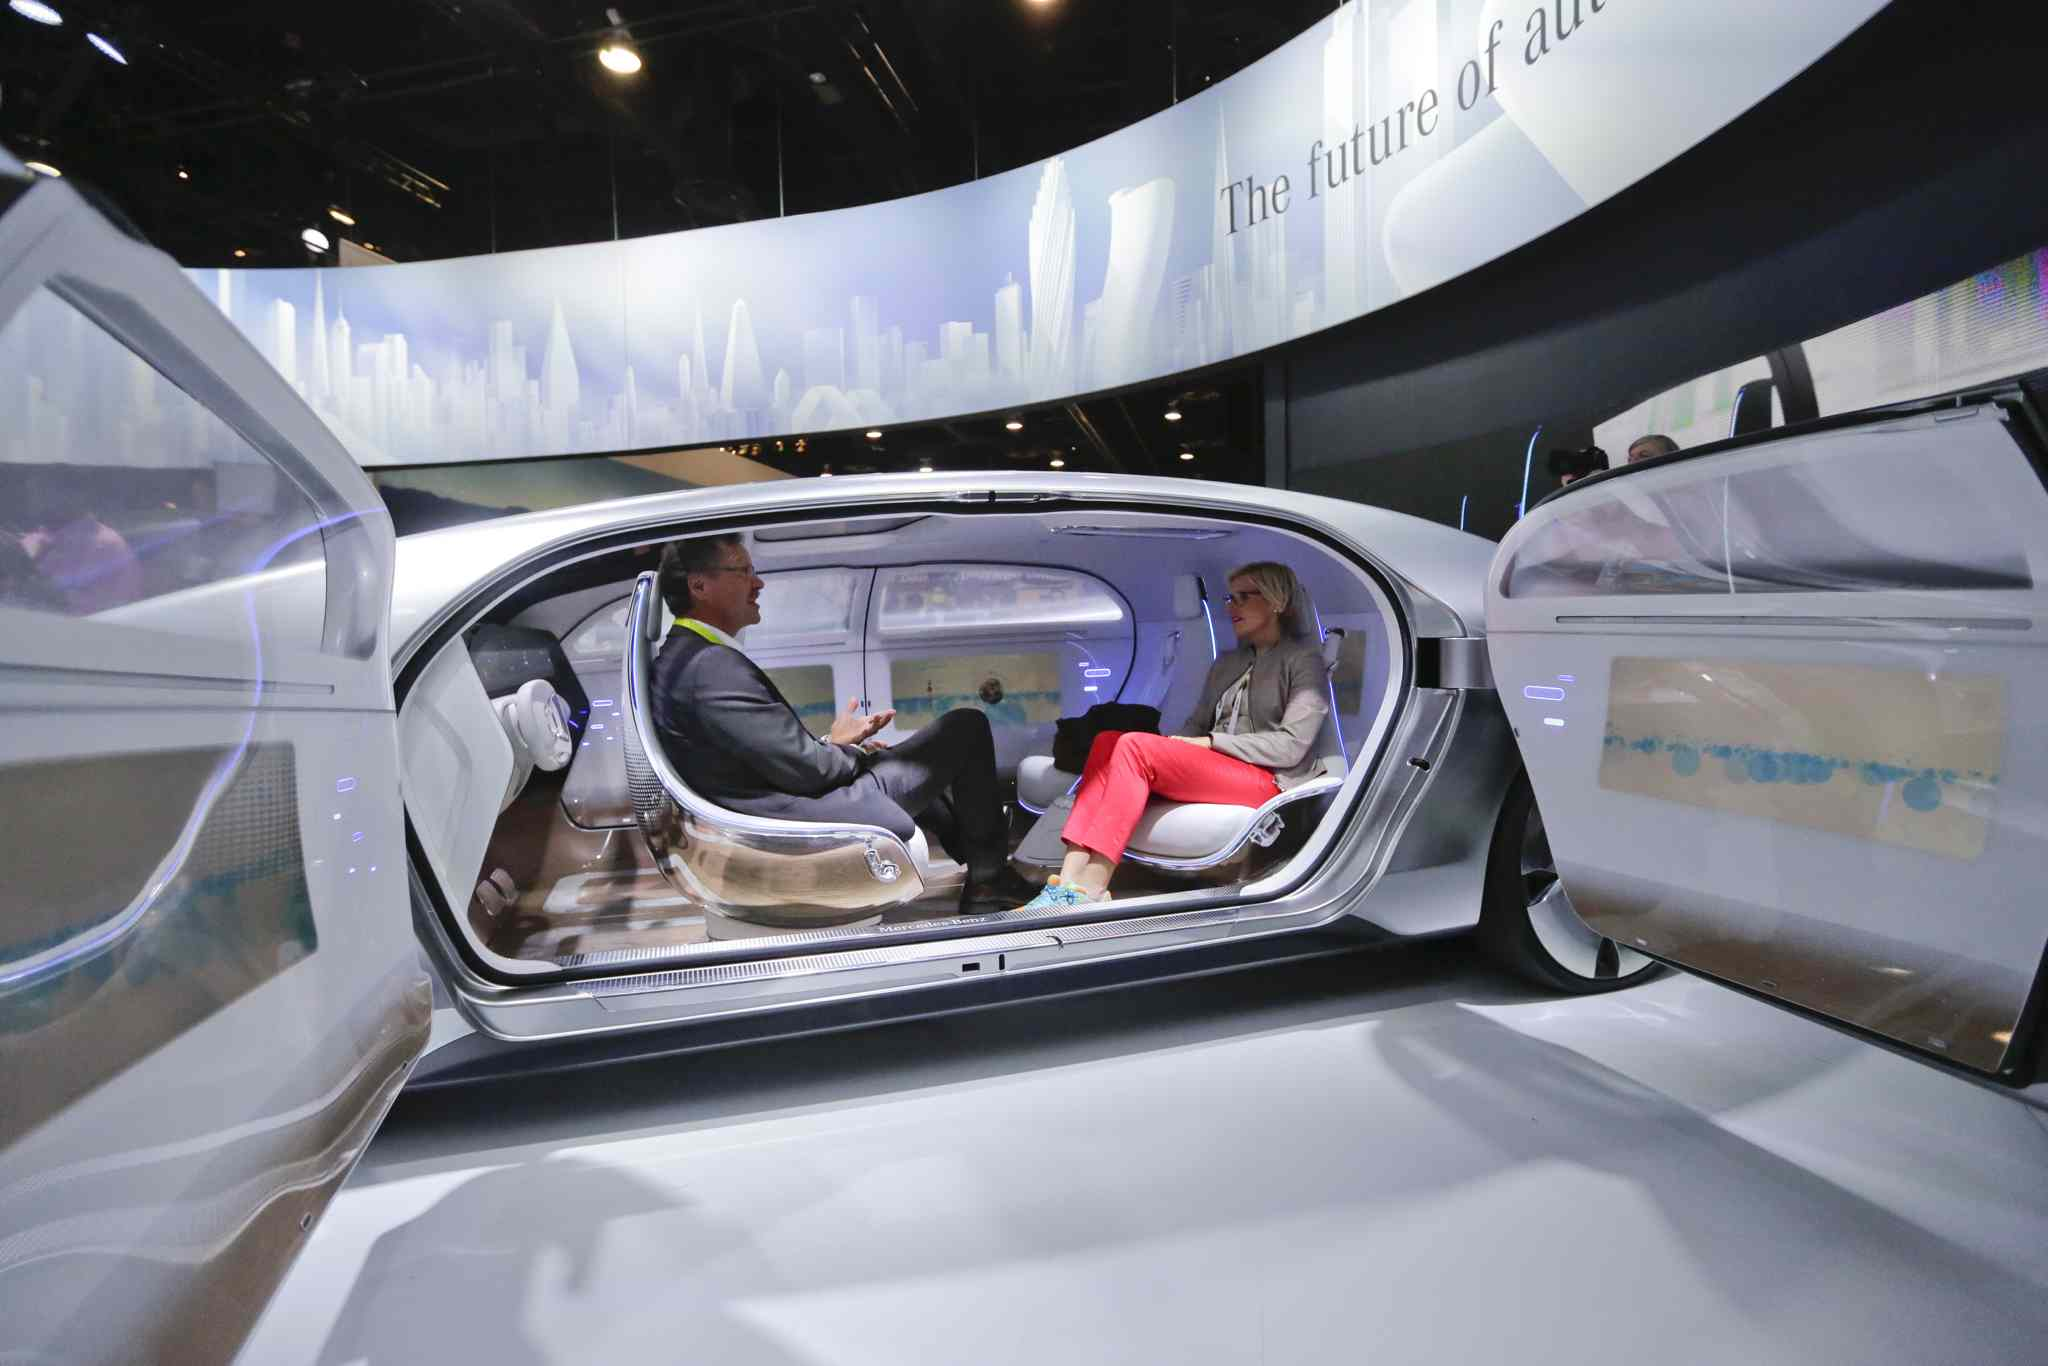 Attendees sit in the self-driving Mercedes-Benz F 015 concept car at the Mercedes-Benz booth at the International CES in January.